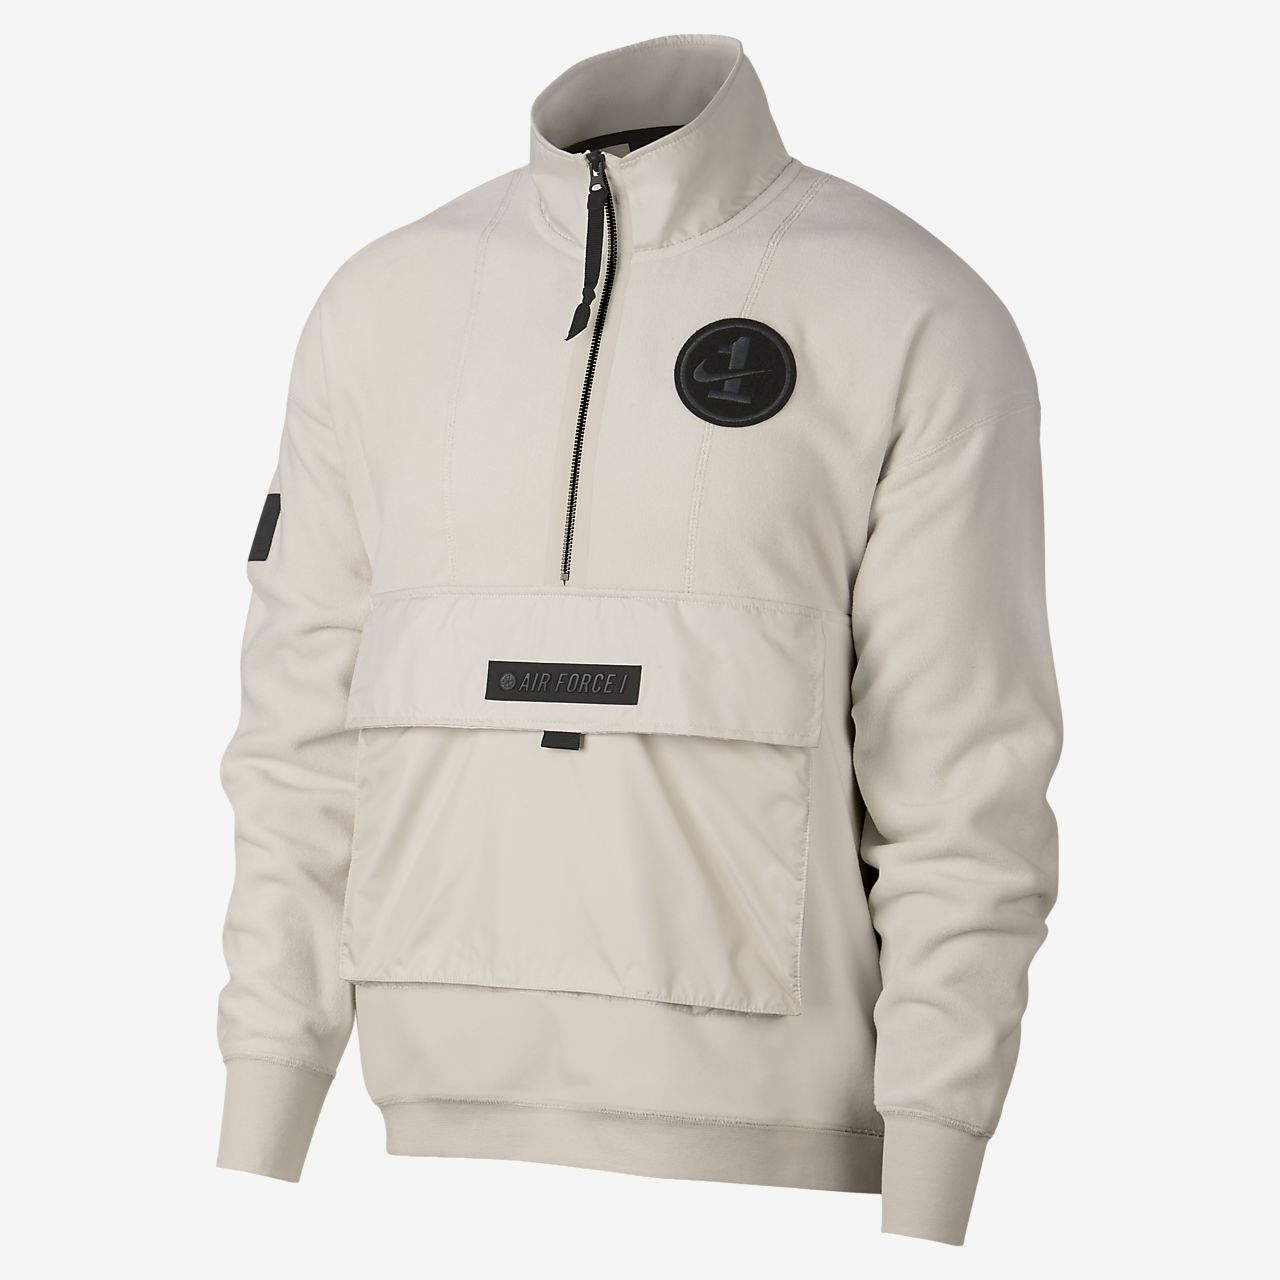 Nike Sportswear AF1 Men's Half-Zip Top